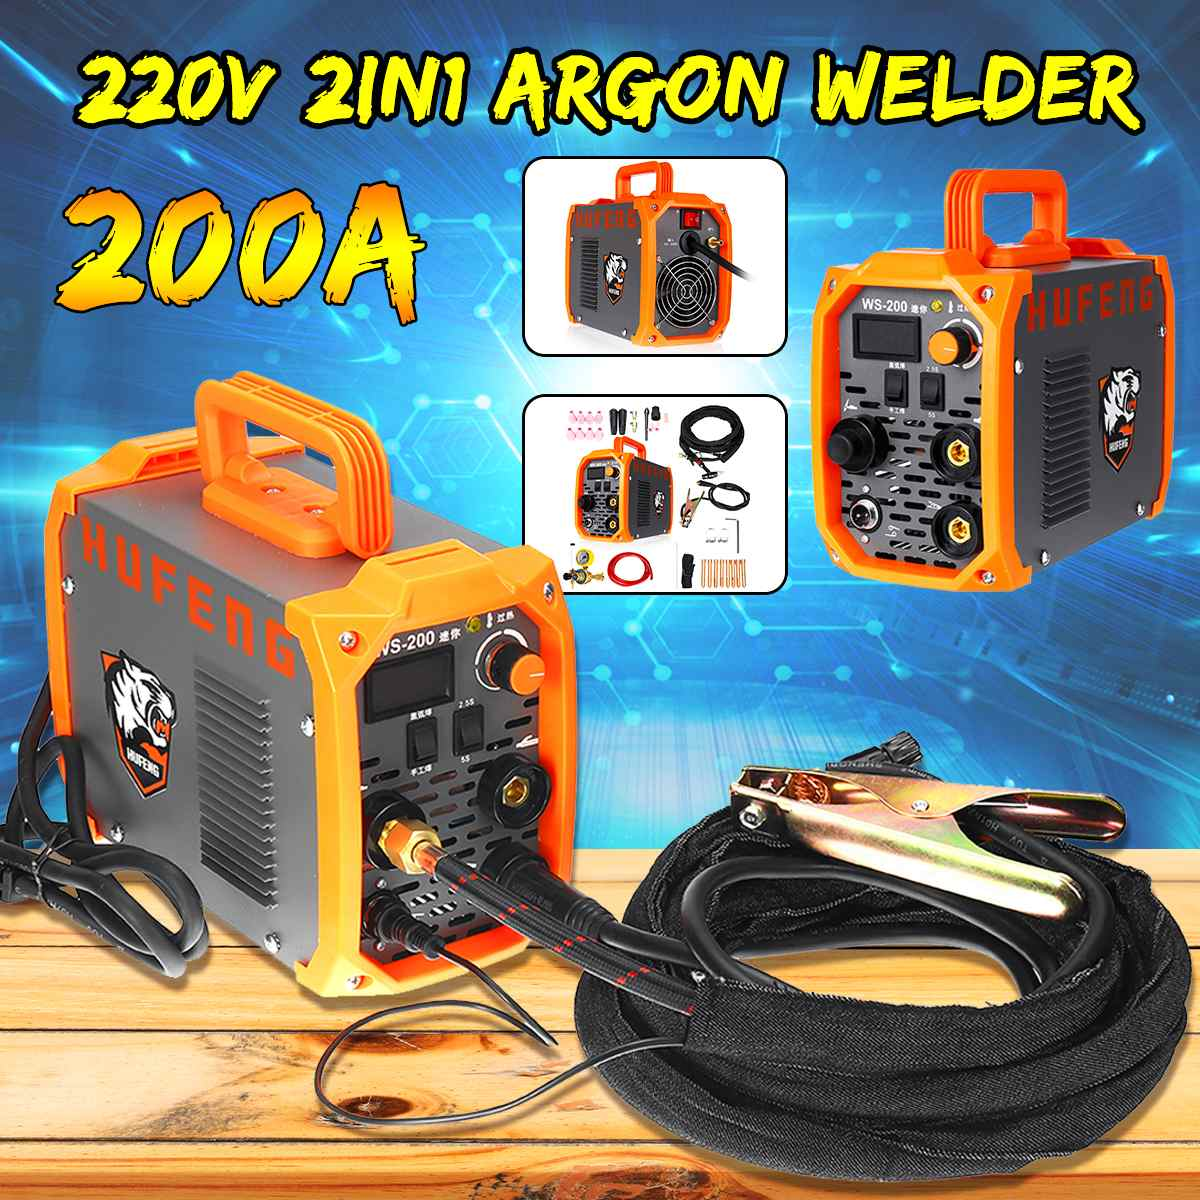 220V 200A Mini Arc Welder IGBT Inverter MMA Welding Machine Agron Welder Ground Clip TIG Torch Welding Tools New Arrival 2019